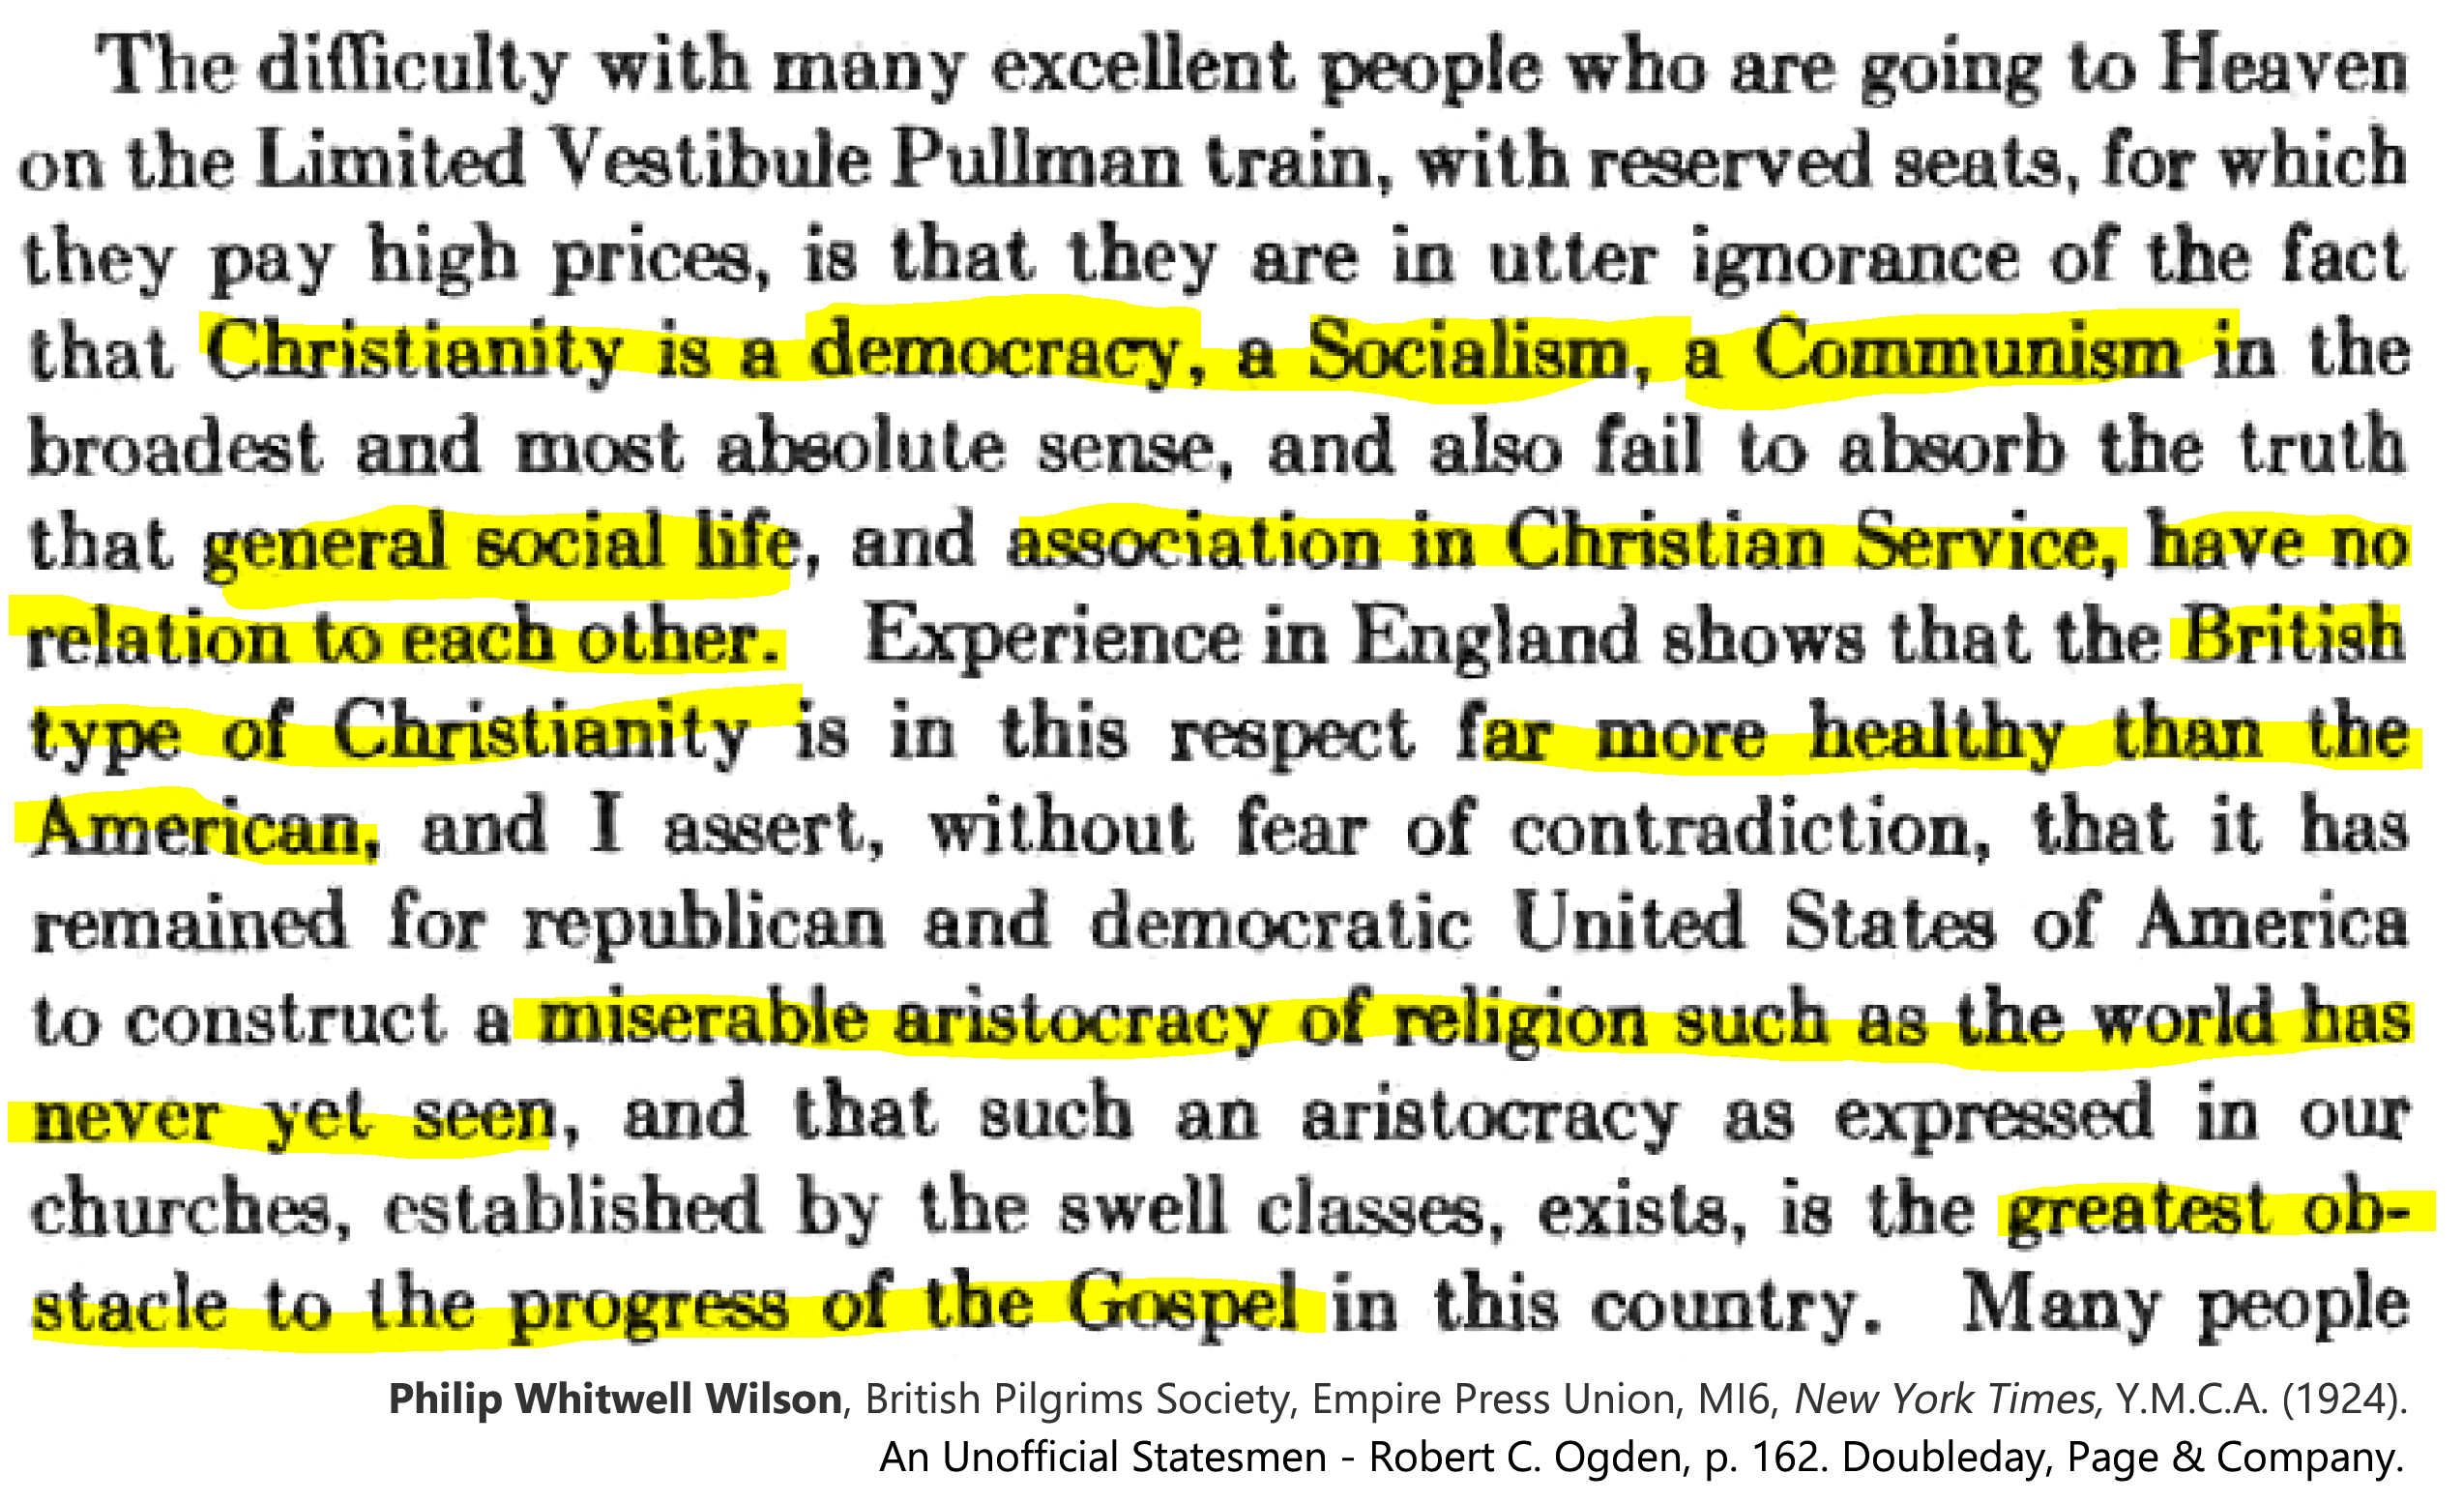 """Philip Whitwell Wilson. (1924). An Unofficial Statesmen - Robert C. Ogden, 325 pgs., (""""Christianity is a democracy, a Socialism, a Communism """"),  p. 162. Country Life Press, Doubleday, Page & Company. TRANSCRIPT: """"The difficulty with many excellent people who are going to Heaven on the Limited Vestibule Pullman train, with reserved seats, for which they pay high prices, is that they are in utter ignorance of the fact that Christianity is a democracy, a Socialism, a Communism in tbe broadest and most absolute sense, and also fail to absorb the truth that general social life, and association in Christian Service, have no relation to each other. Experience in England shows that the British type of Christianity is in this respect far more healthy than the American, and I assert, without fear of contradiction, that it has remained for republican and democratic United States of America to construct a miserable aristocracy of religion such as the world has never yet seen, and that such an aristocracy as expressed in our churches, established by the swell classes, exists, is the greatest obstacle to the progress of the Gospel in this country. Many people…"""""""